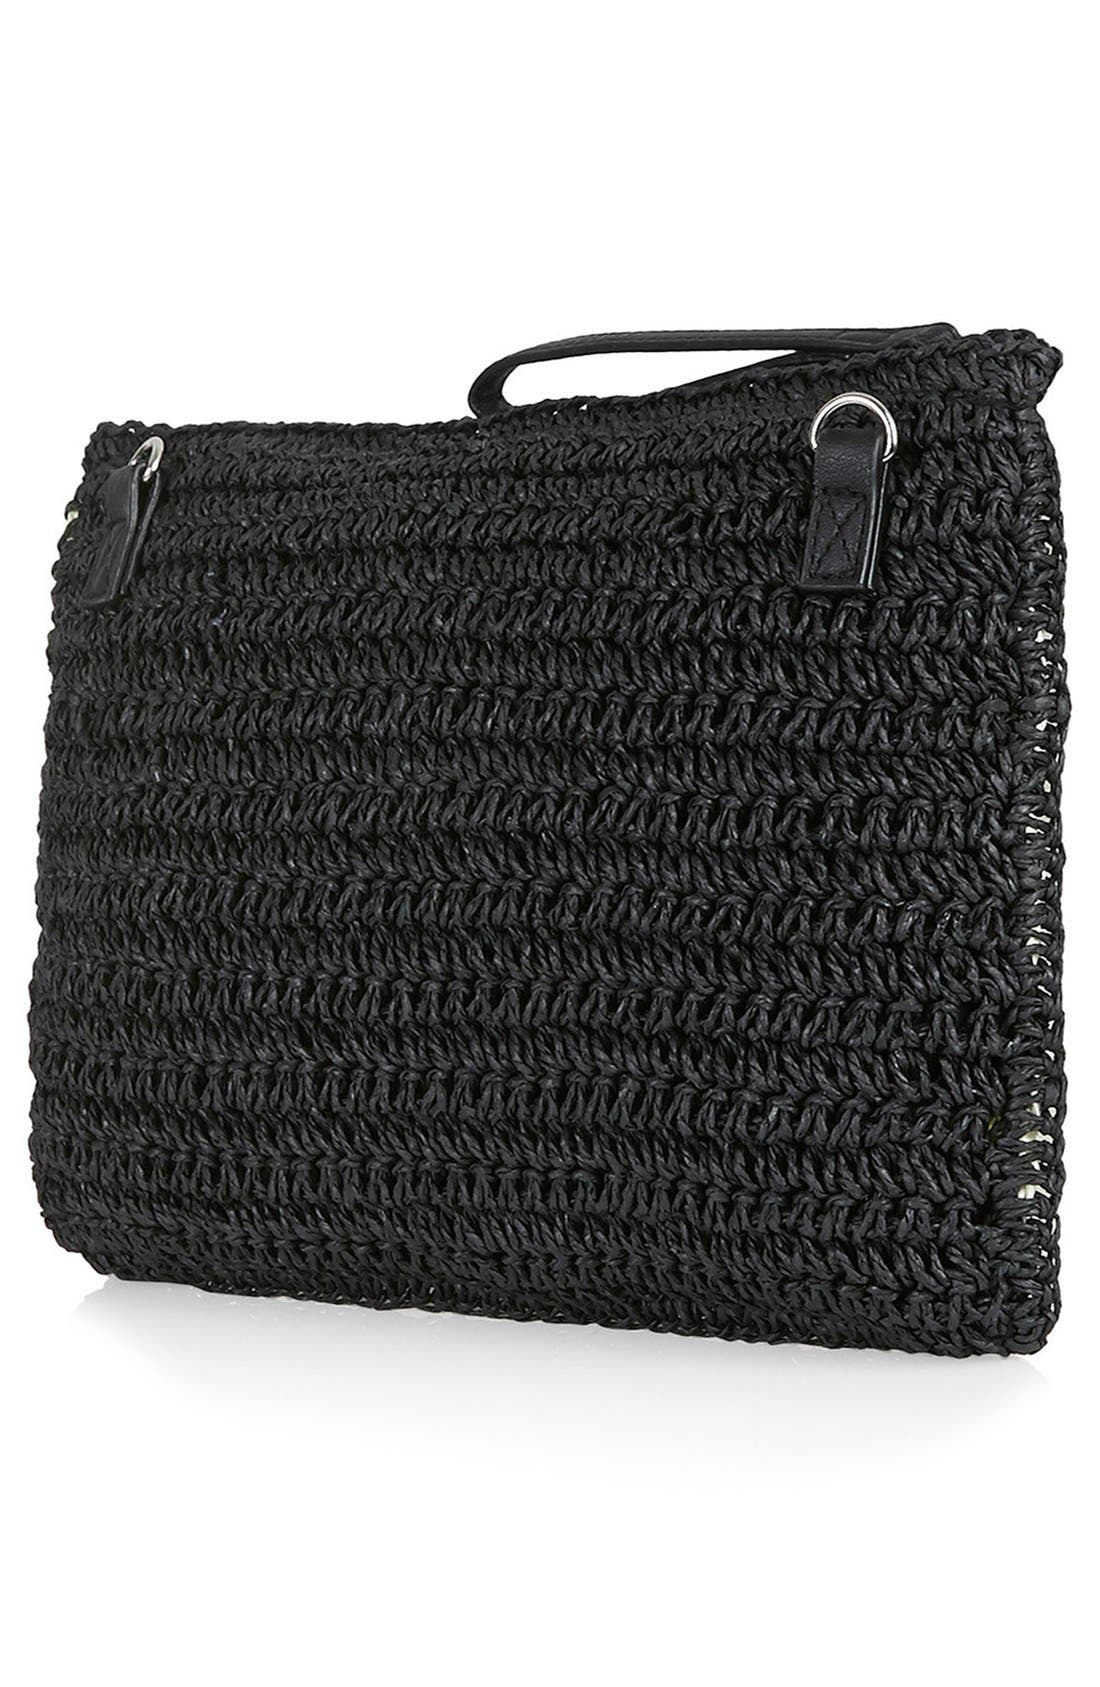 Alternate Image 3  - Topshop 'Pineapple' Woven Clutch